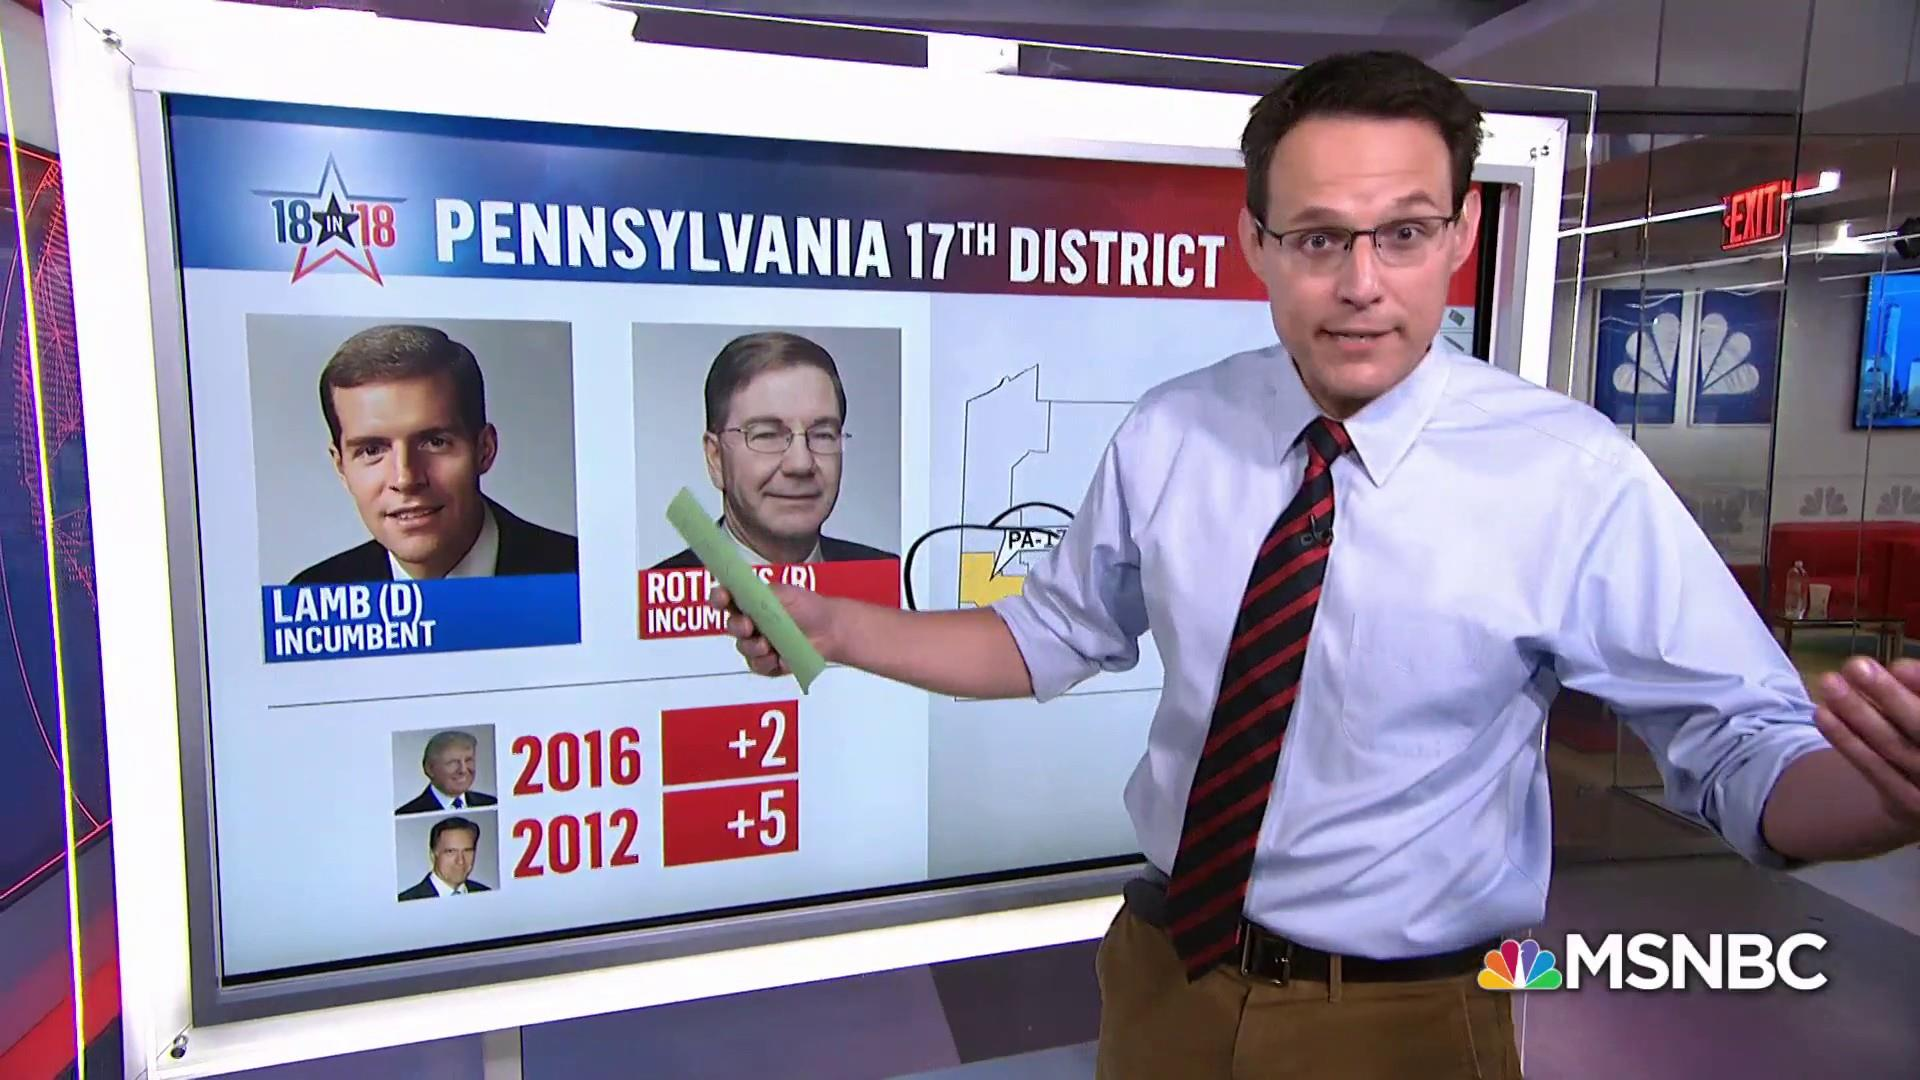 #TrackingKornacki: Pennsylvania's 17th District